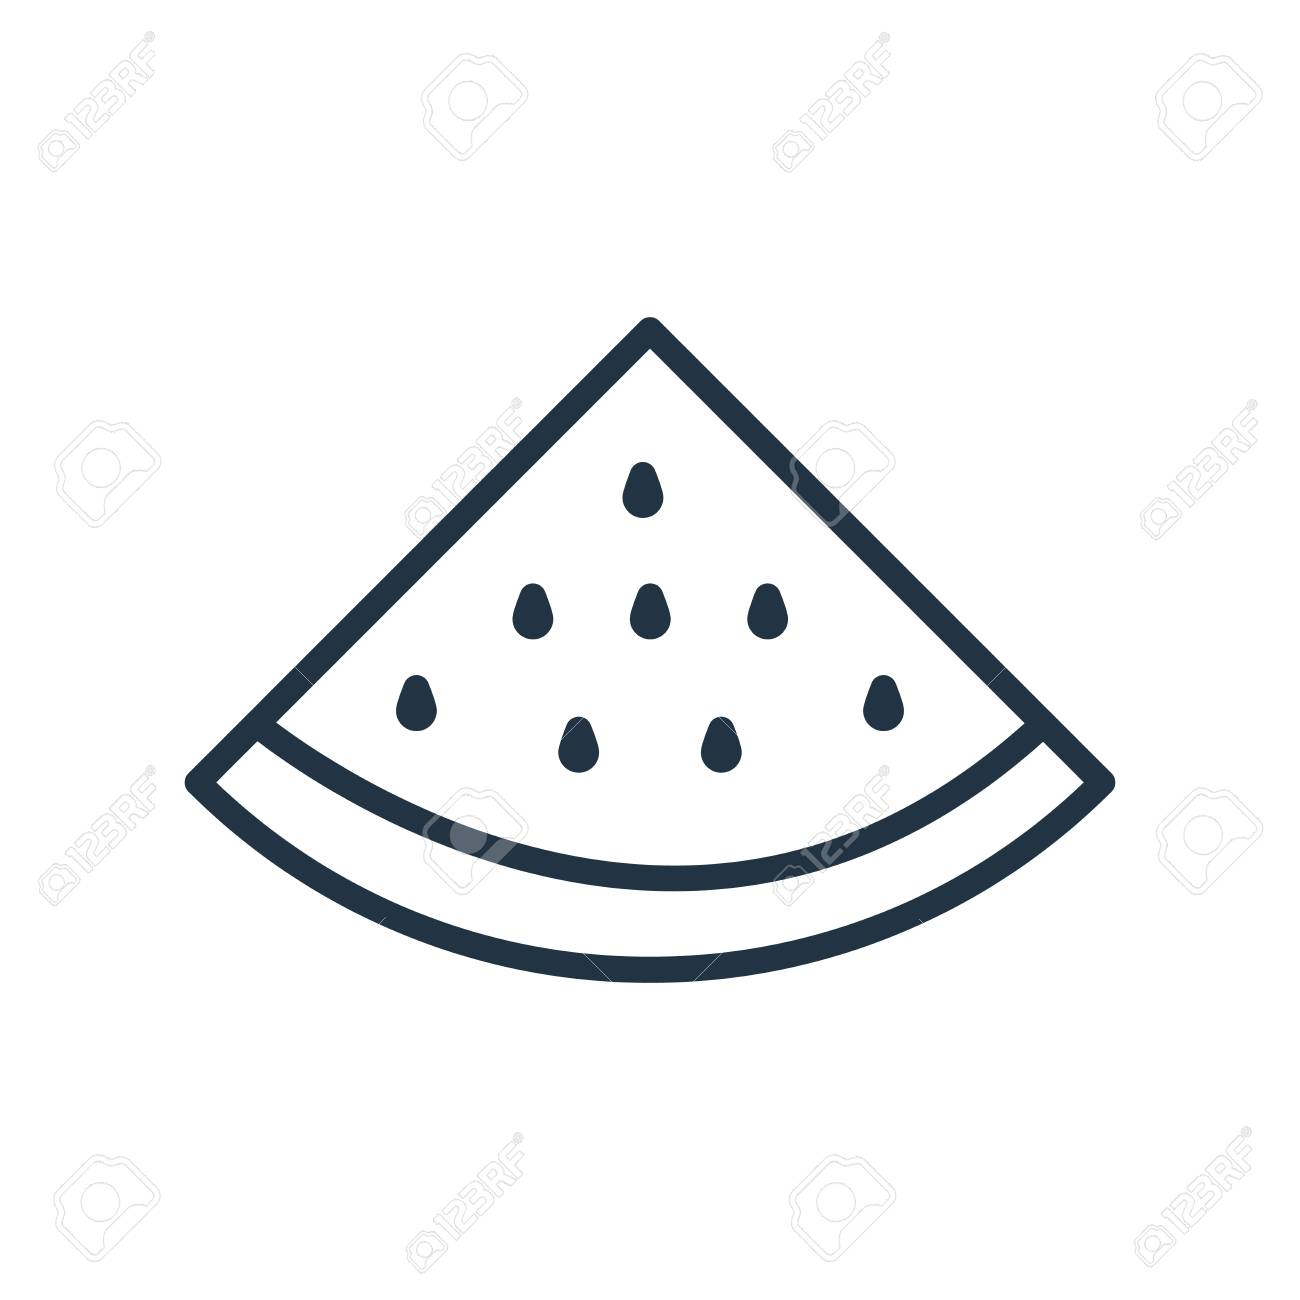 Watermelon icon vector isolated on white background, Watermelon transparent sign - 111605290